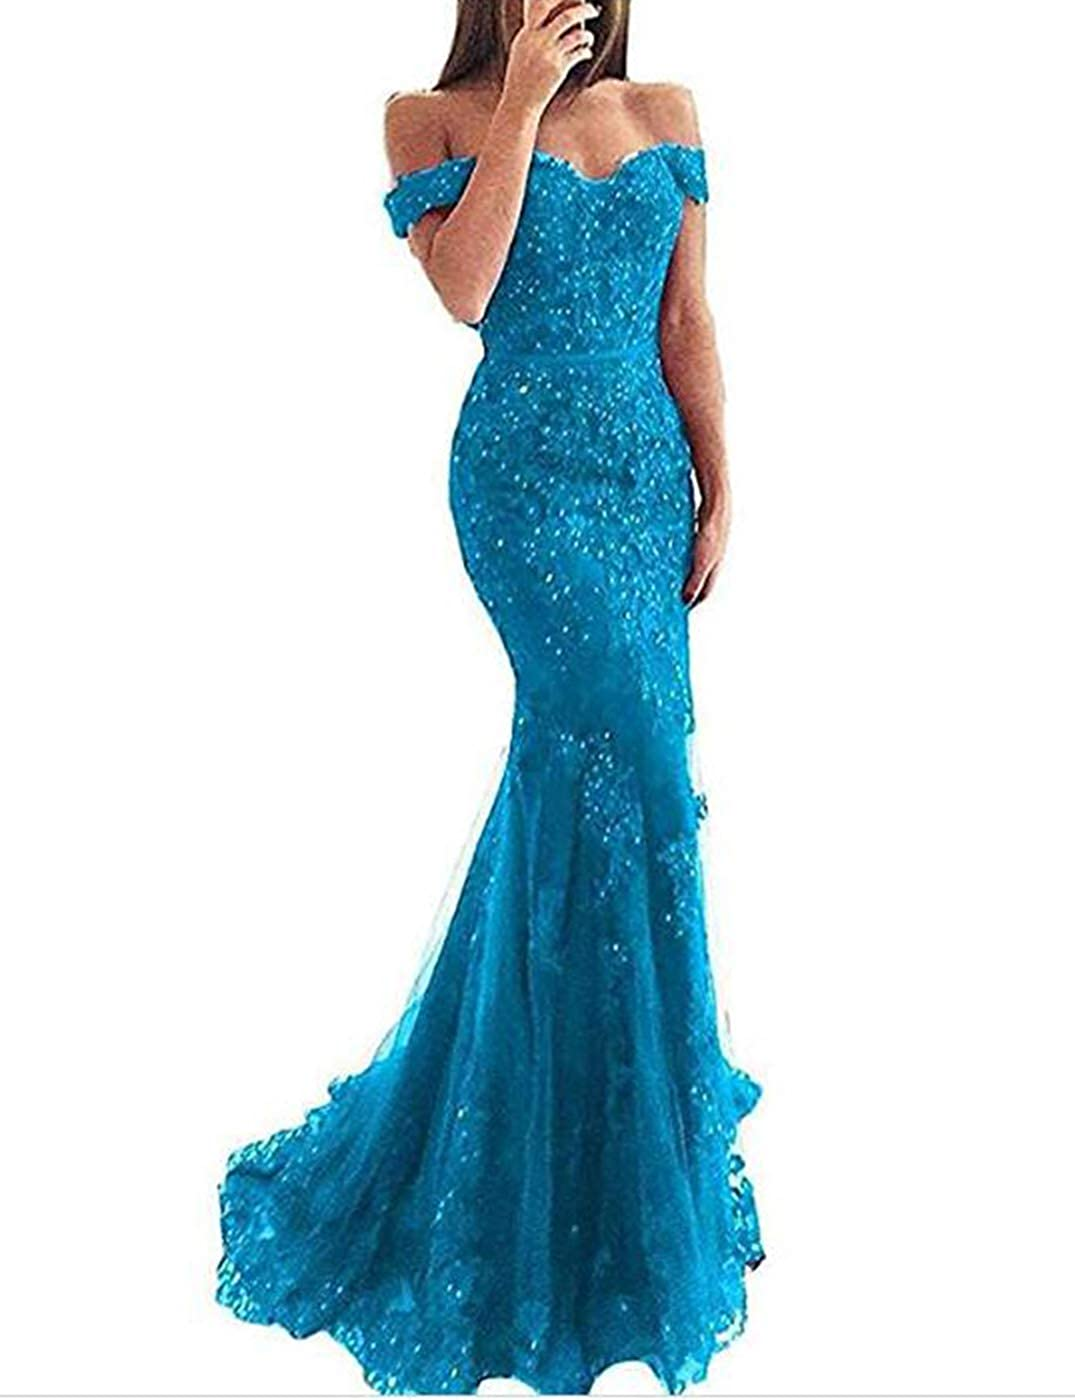 bluee Alicebridal Women's Sexy V Neck Off Shoulder Mermaid Prom Dresses Lace Appliques Formal Evening Party Gowns